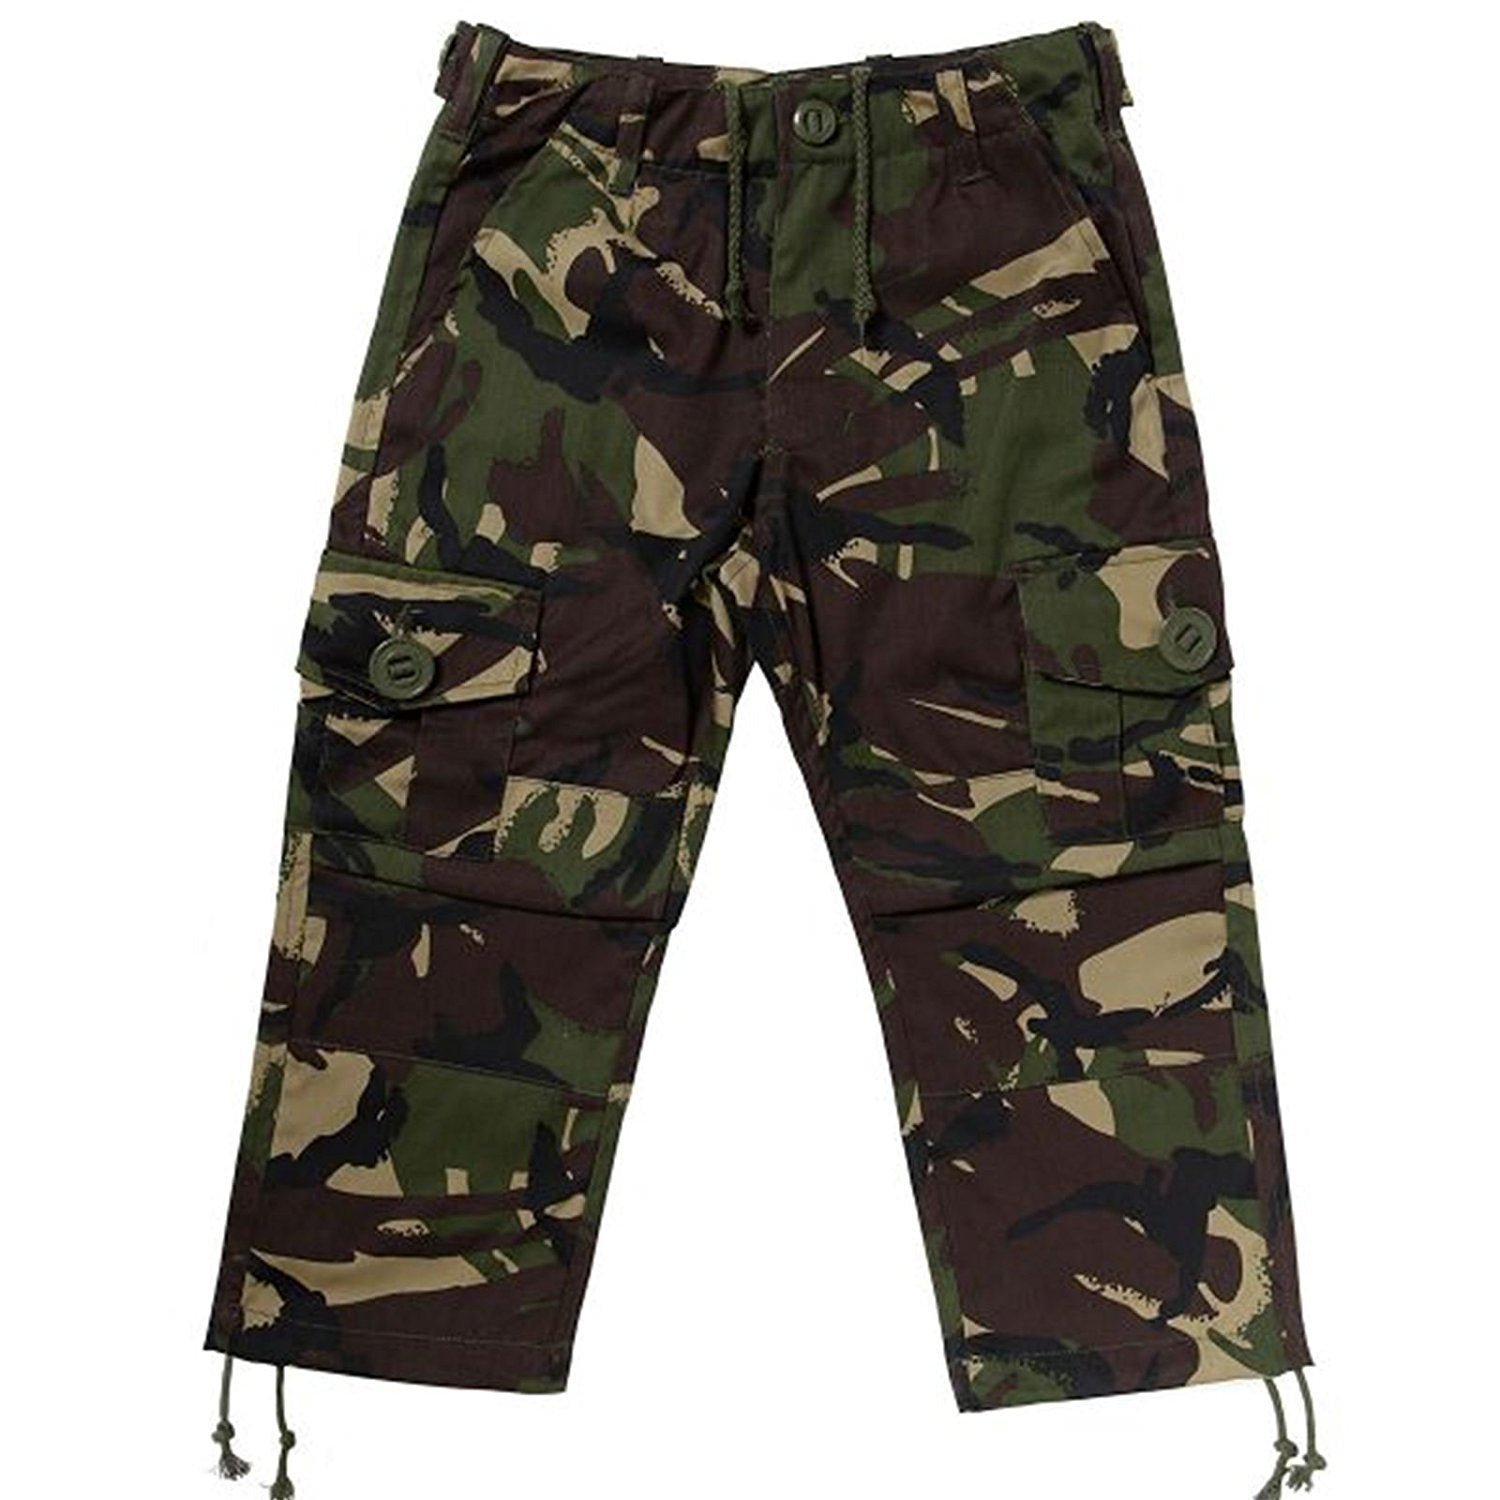 KAS Kids Army Cadet Combat Woodland Camo Trousers - 7/8yrs - Bear Essentials Clothing Company